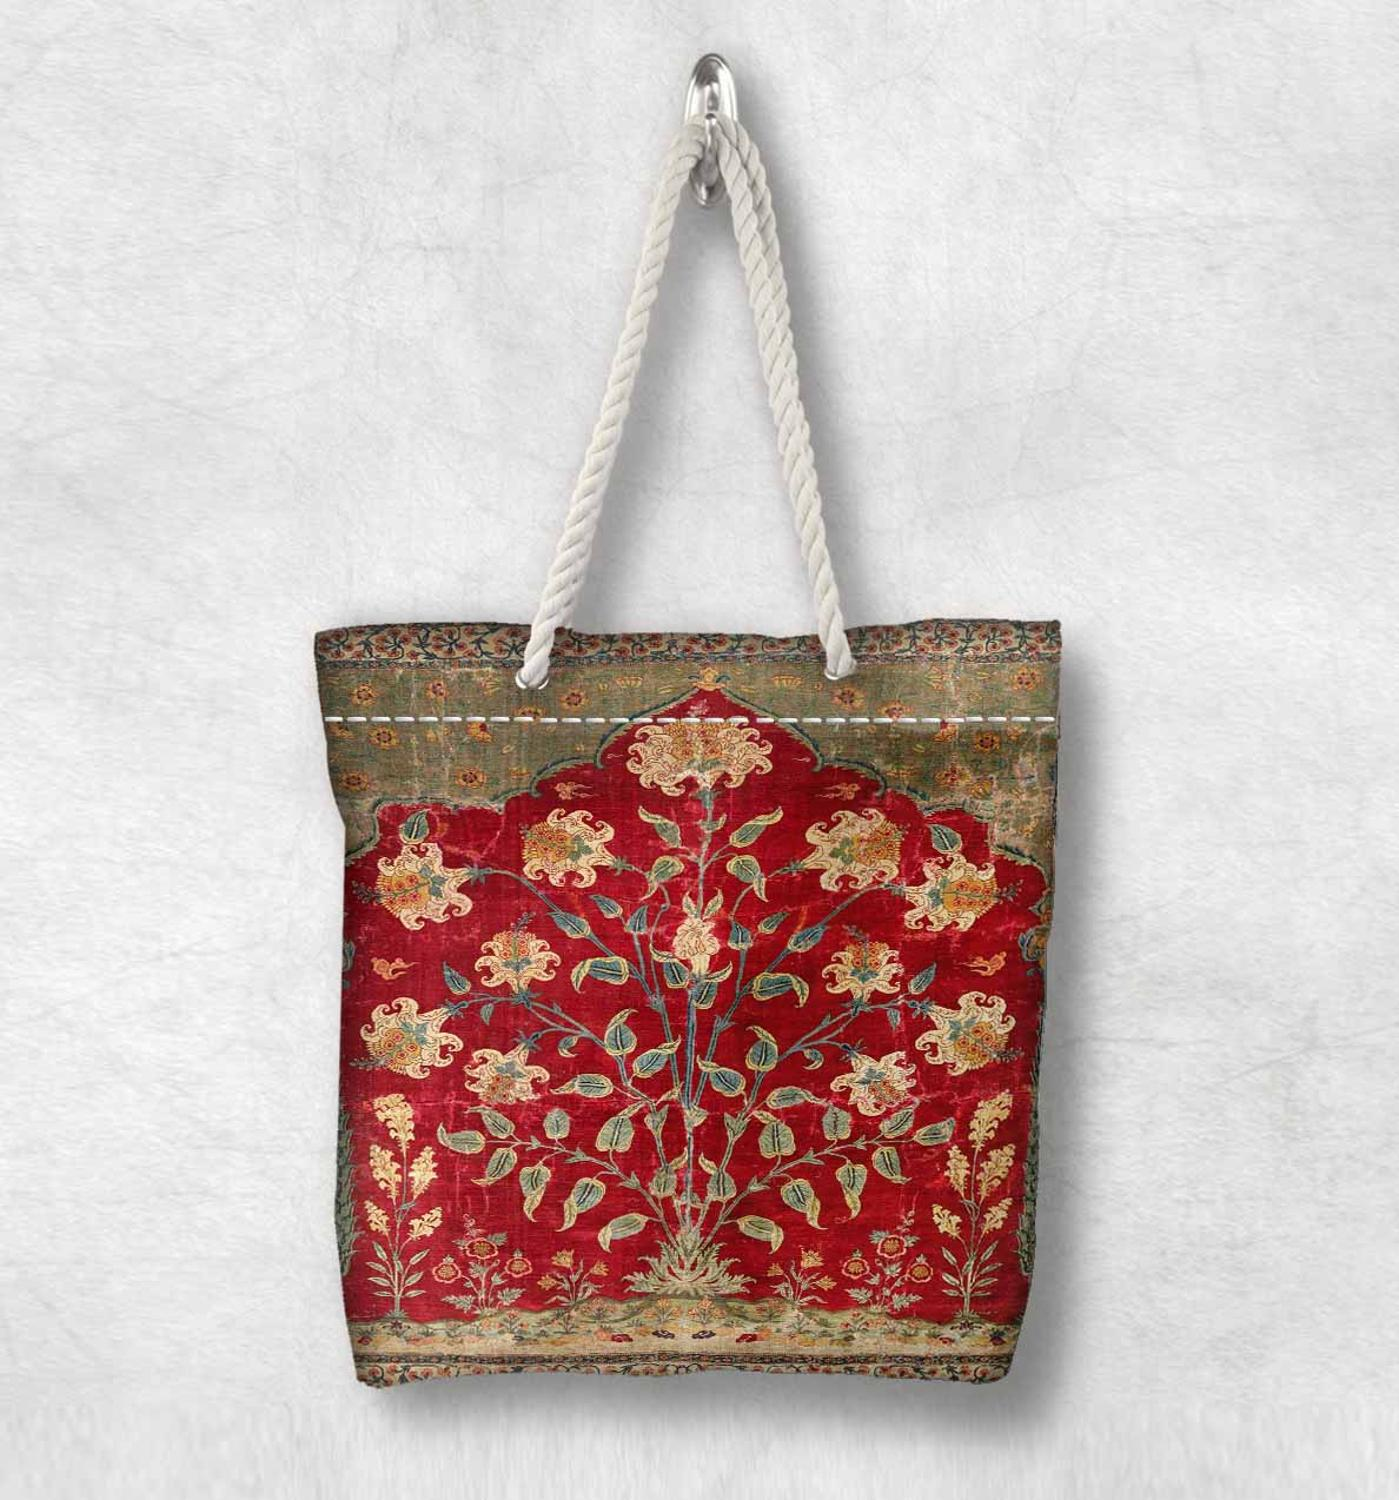 Else Red Yellow Antique Ottoman Floral Design Fashion White Rope Handle Canvas Bag Cotton Canvas Zippered Tote Bag Shoulder Bag